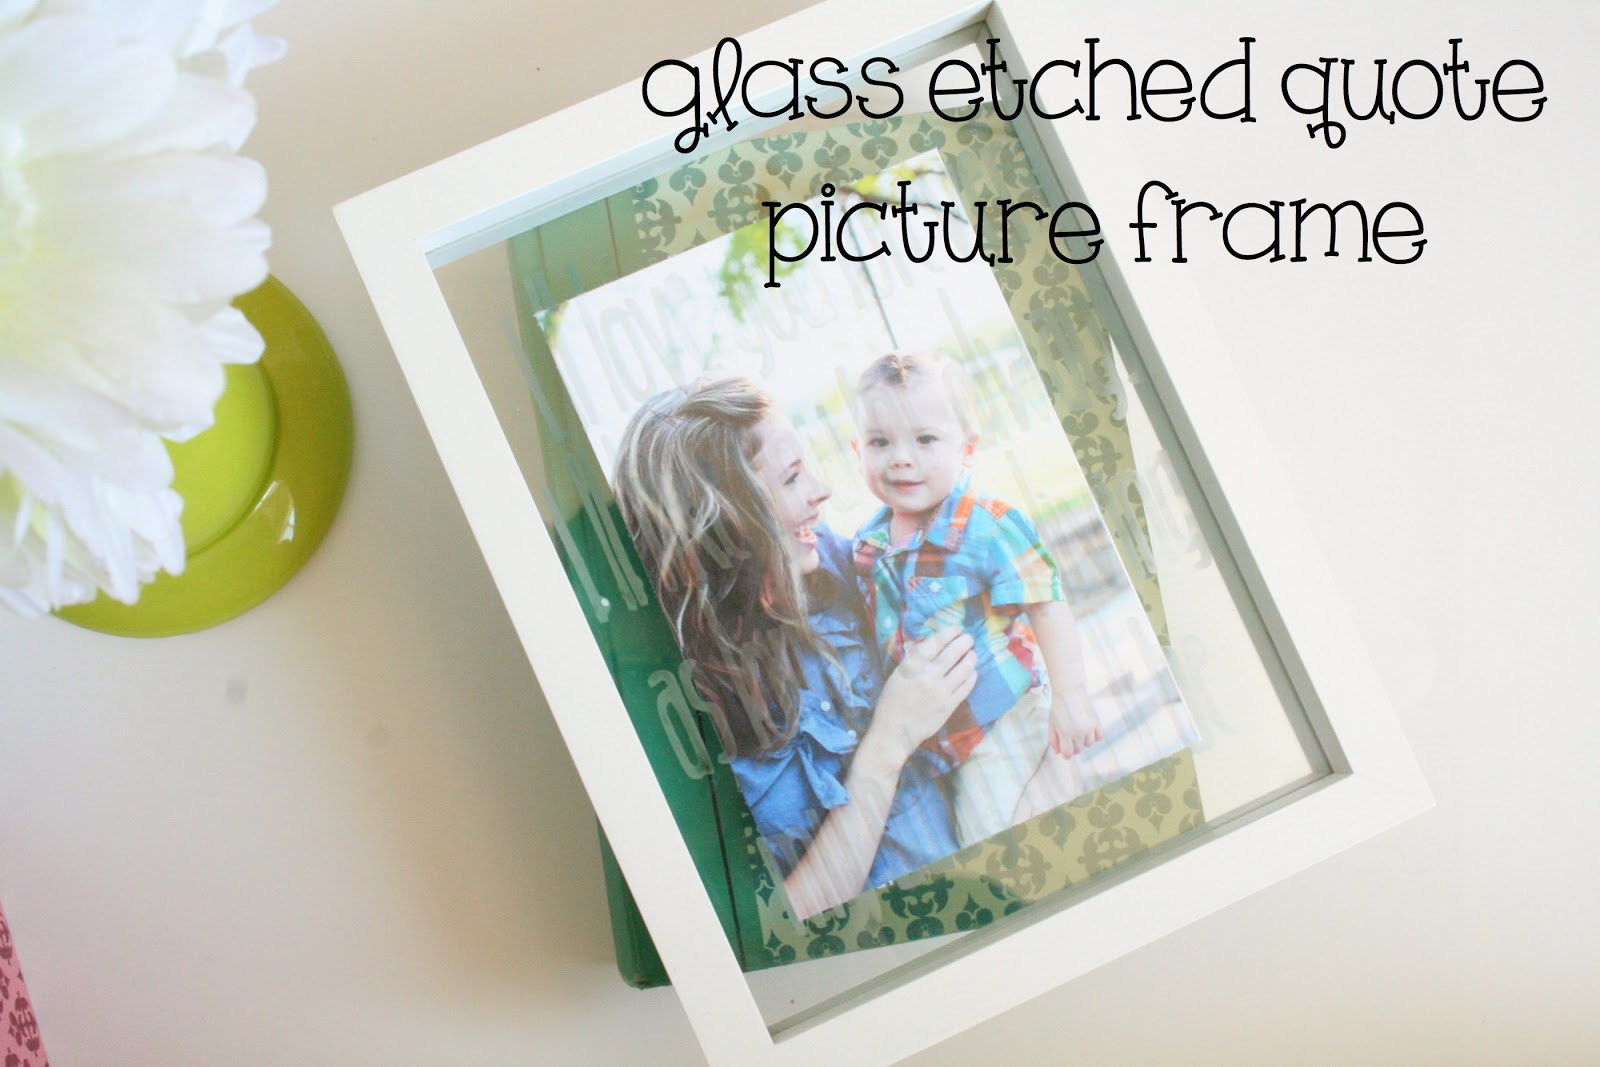 Tied ribbon glass etched quote picture frame monday april 22 2013 jeuxipadfo Image collections